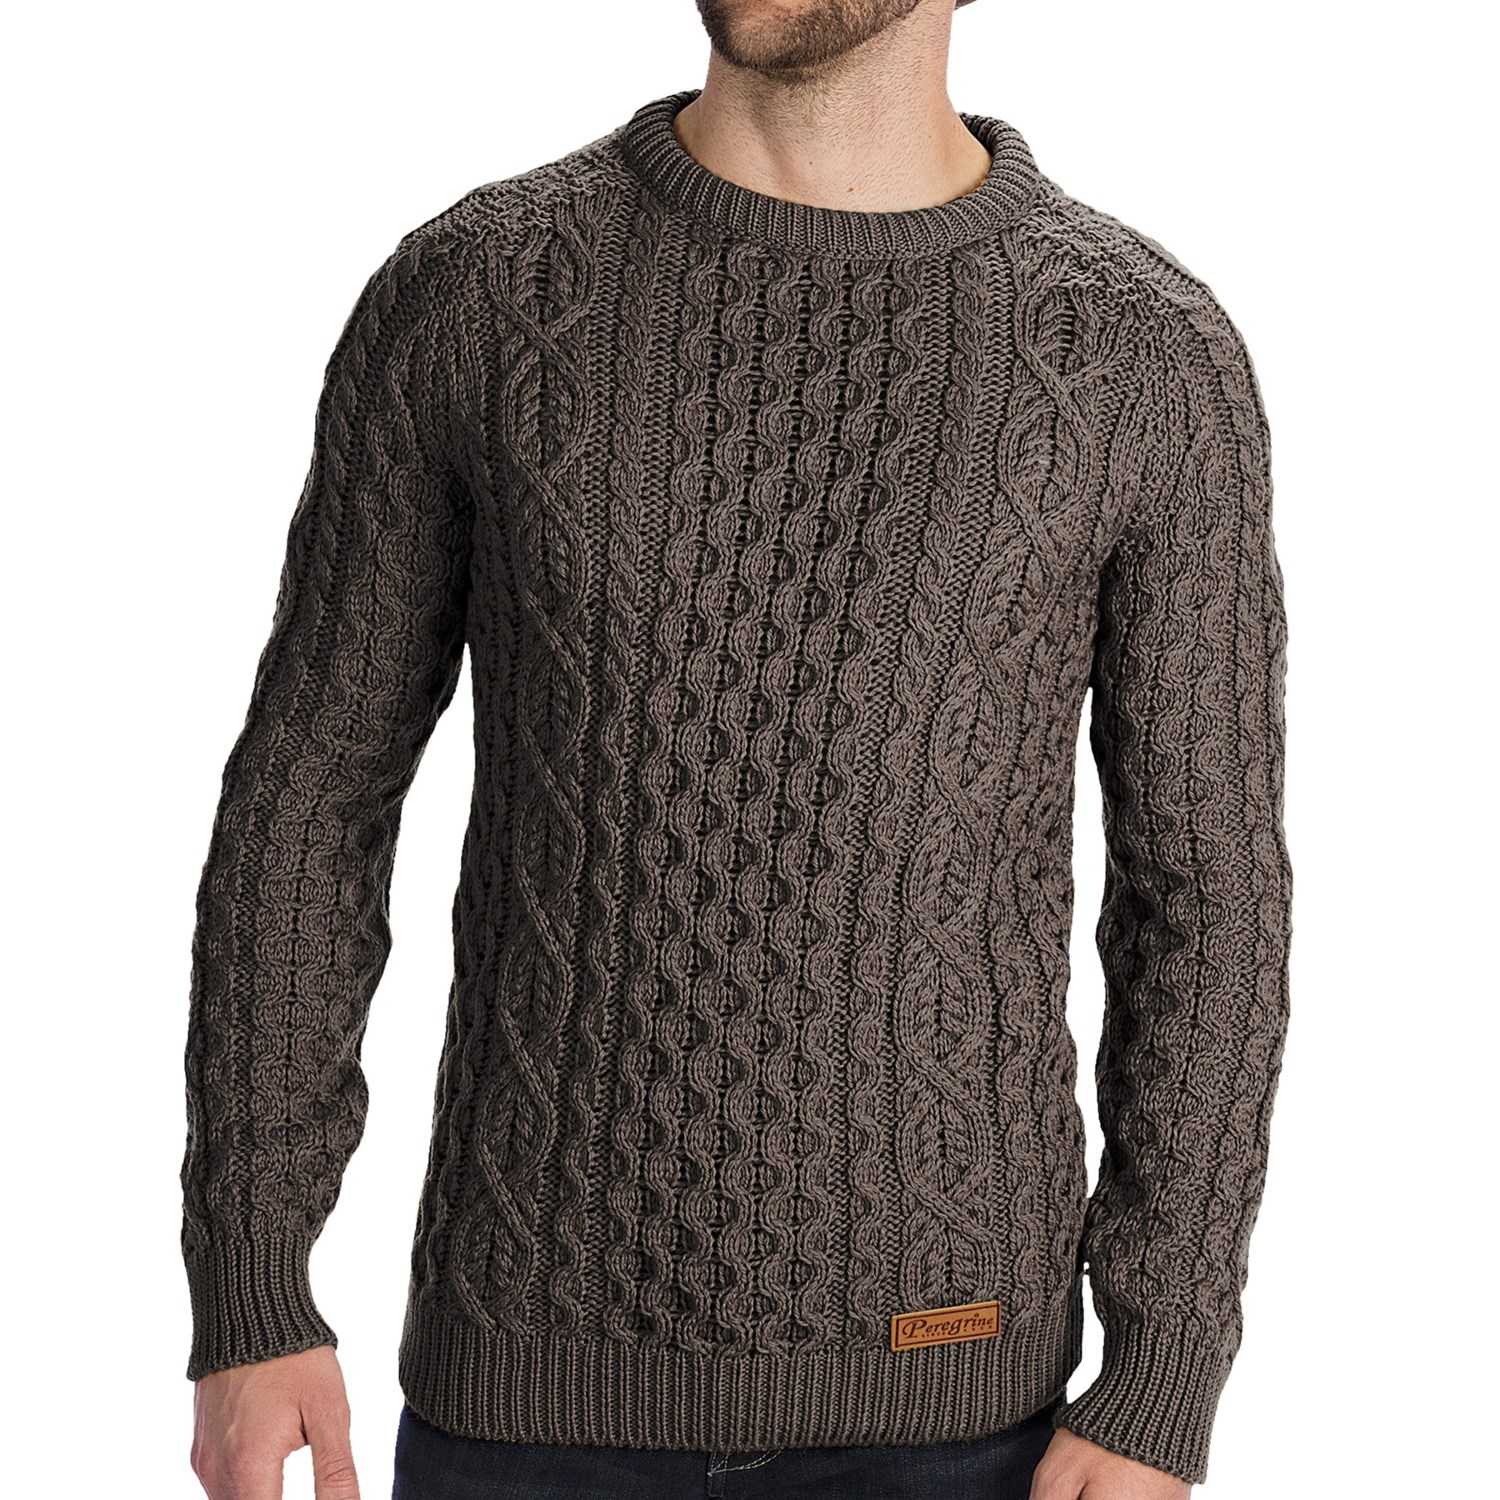 A men's wool sweater is the epitome of class regardless of the color or style you select, as you can easily pair them with jeans for a laid-back and relaxed look or with dressy pants and shoes for a more put-together ensemble.